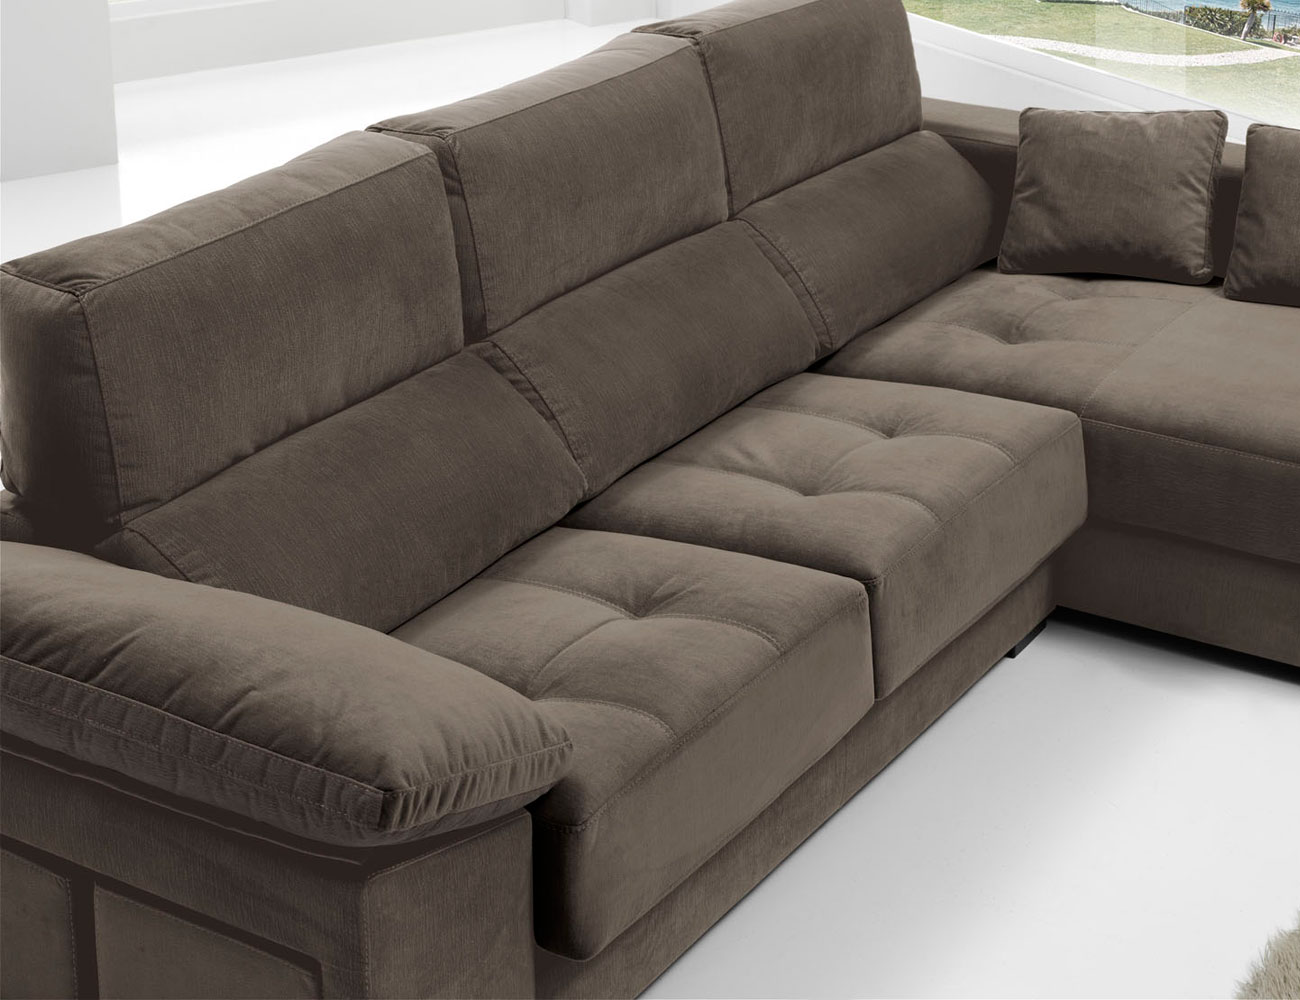 Sofa chaiselongue anti manchas bering pouf 230